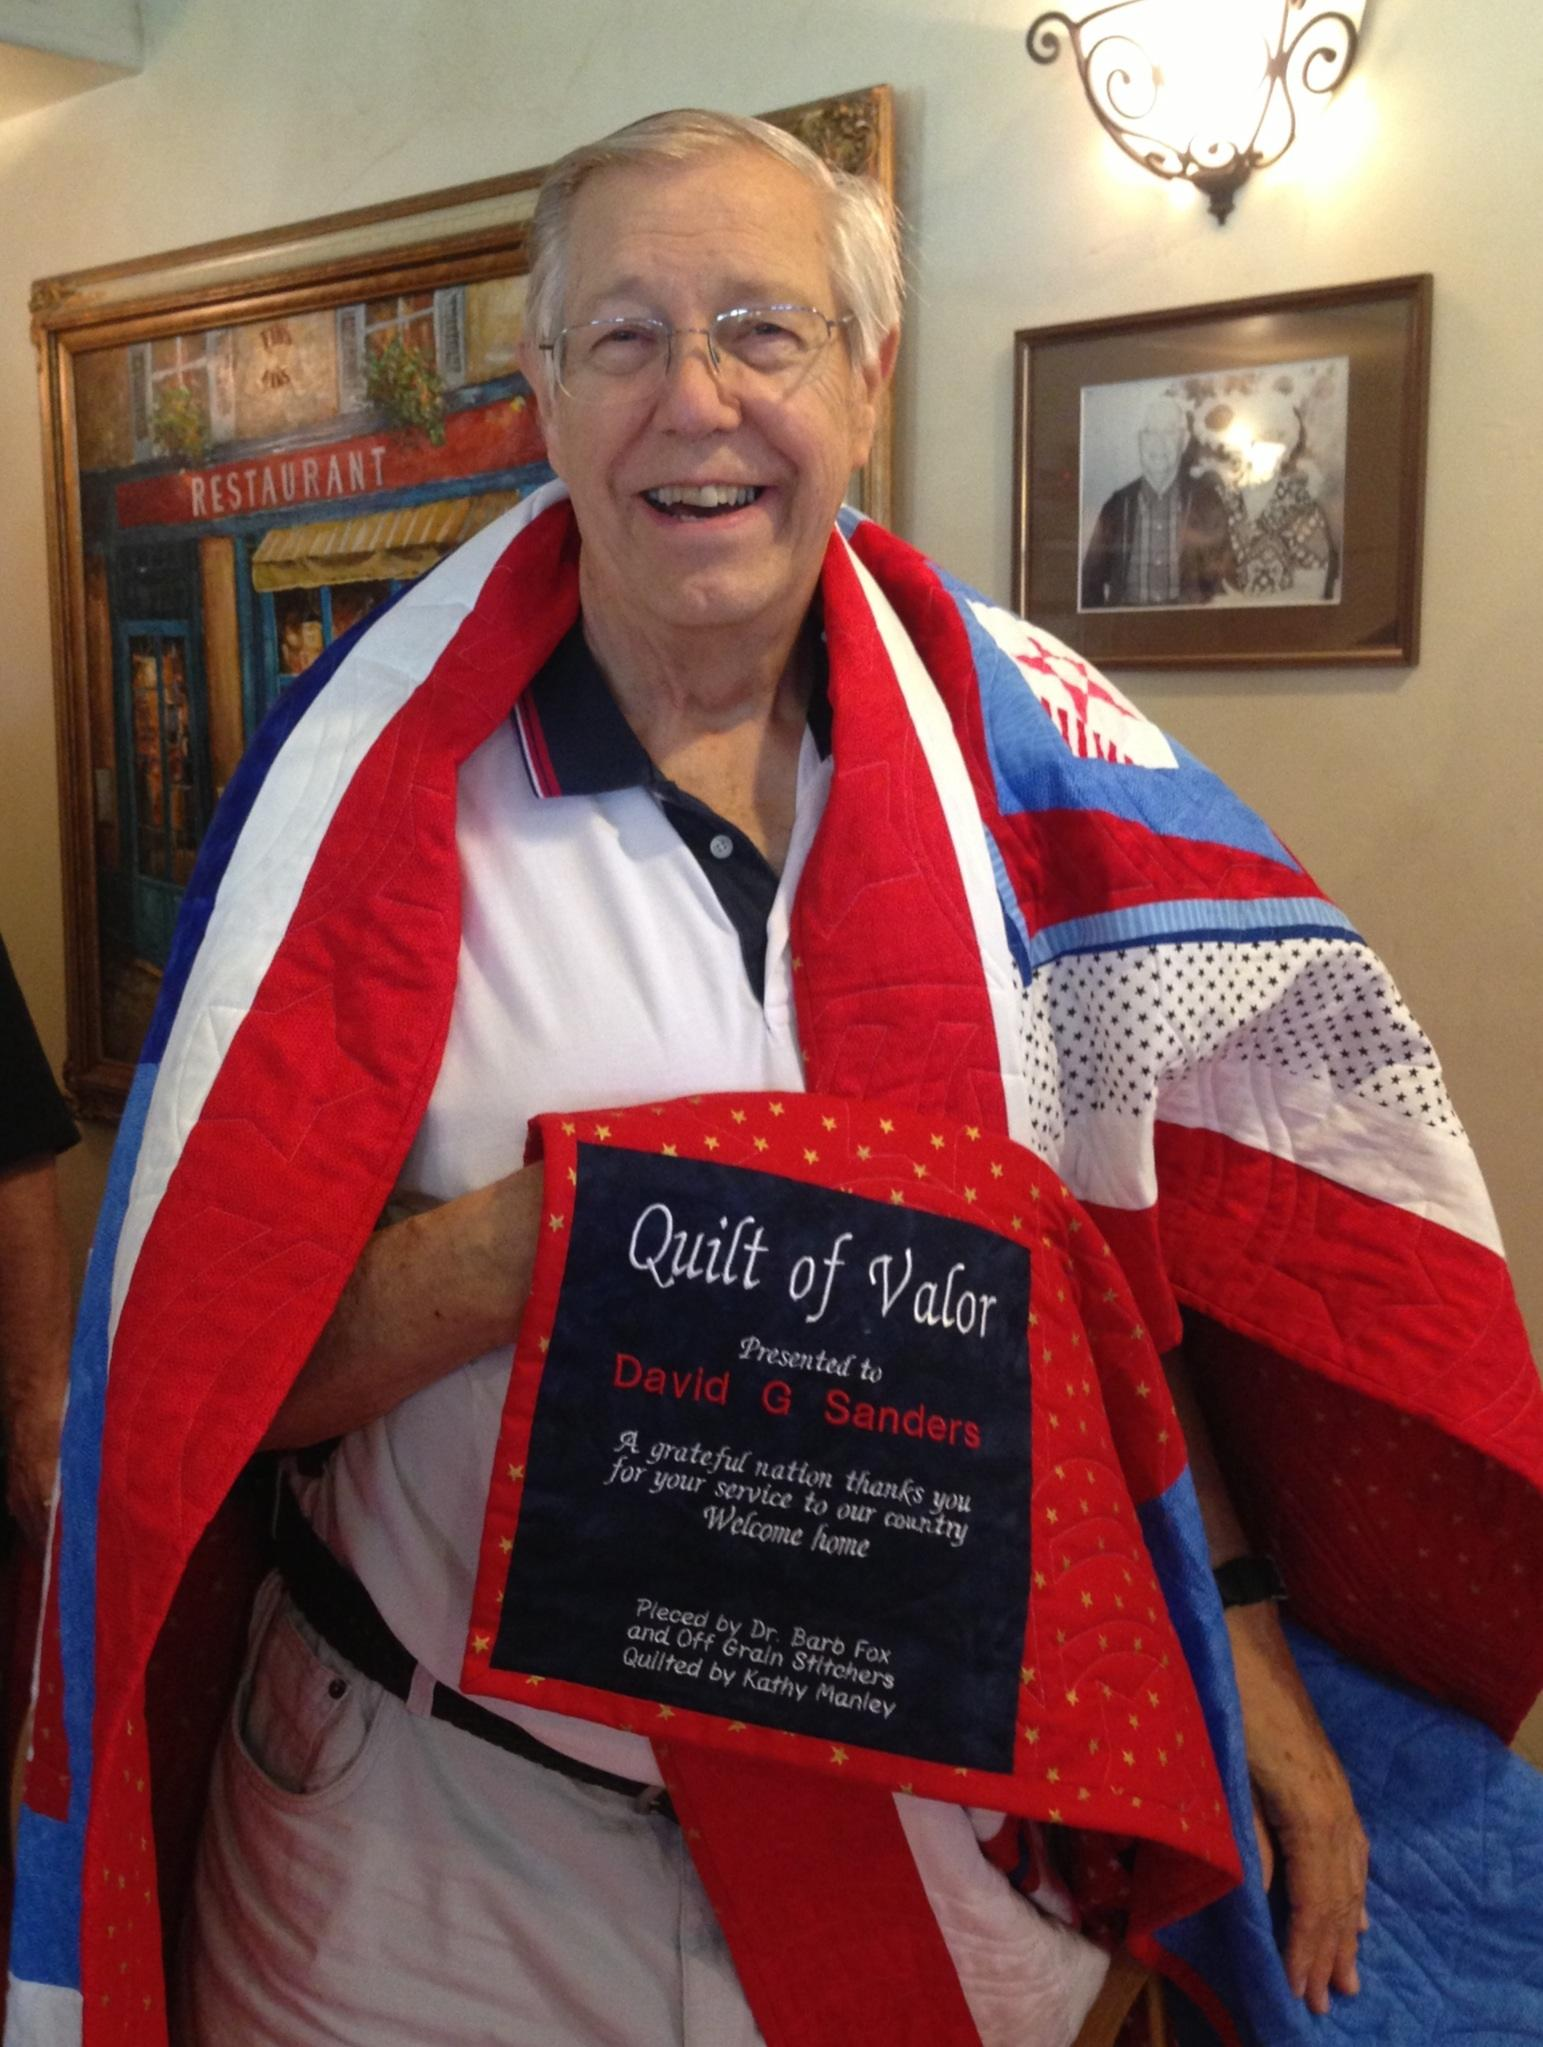 Quilts of Valor quilt with a veteran